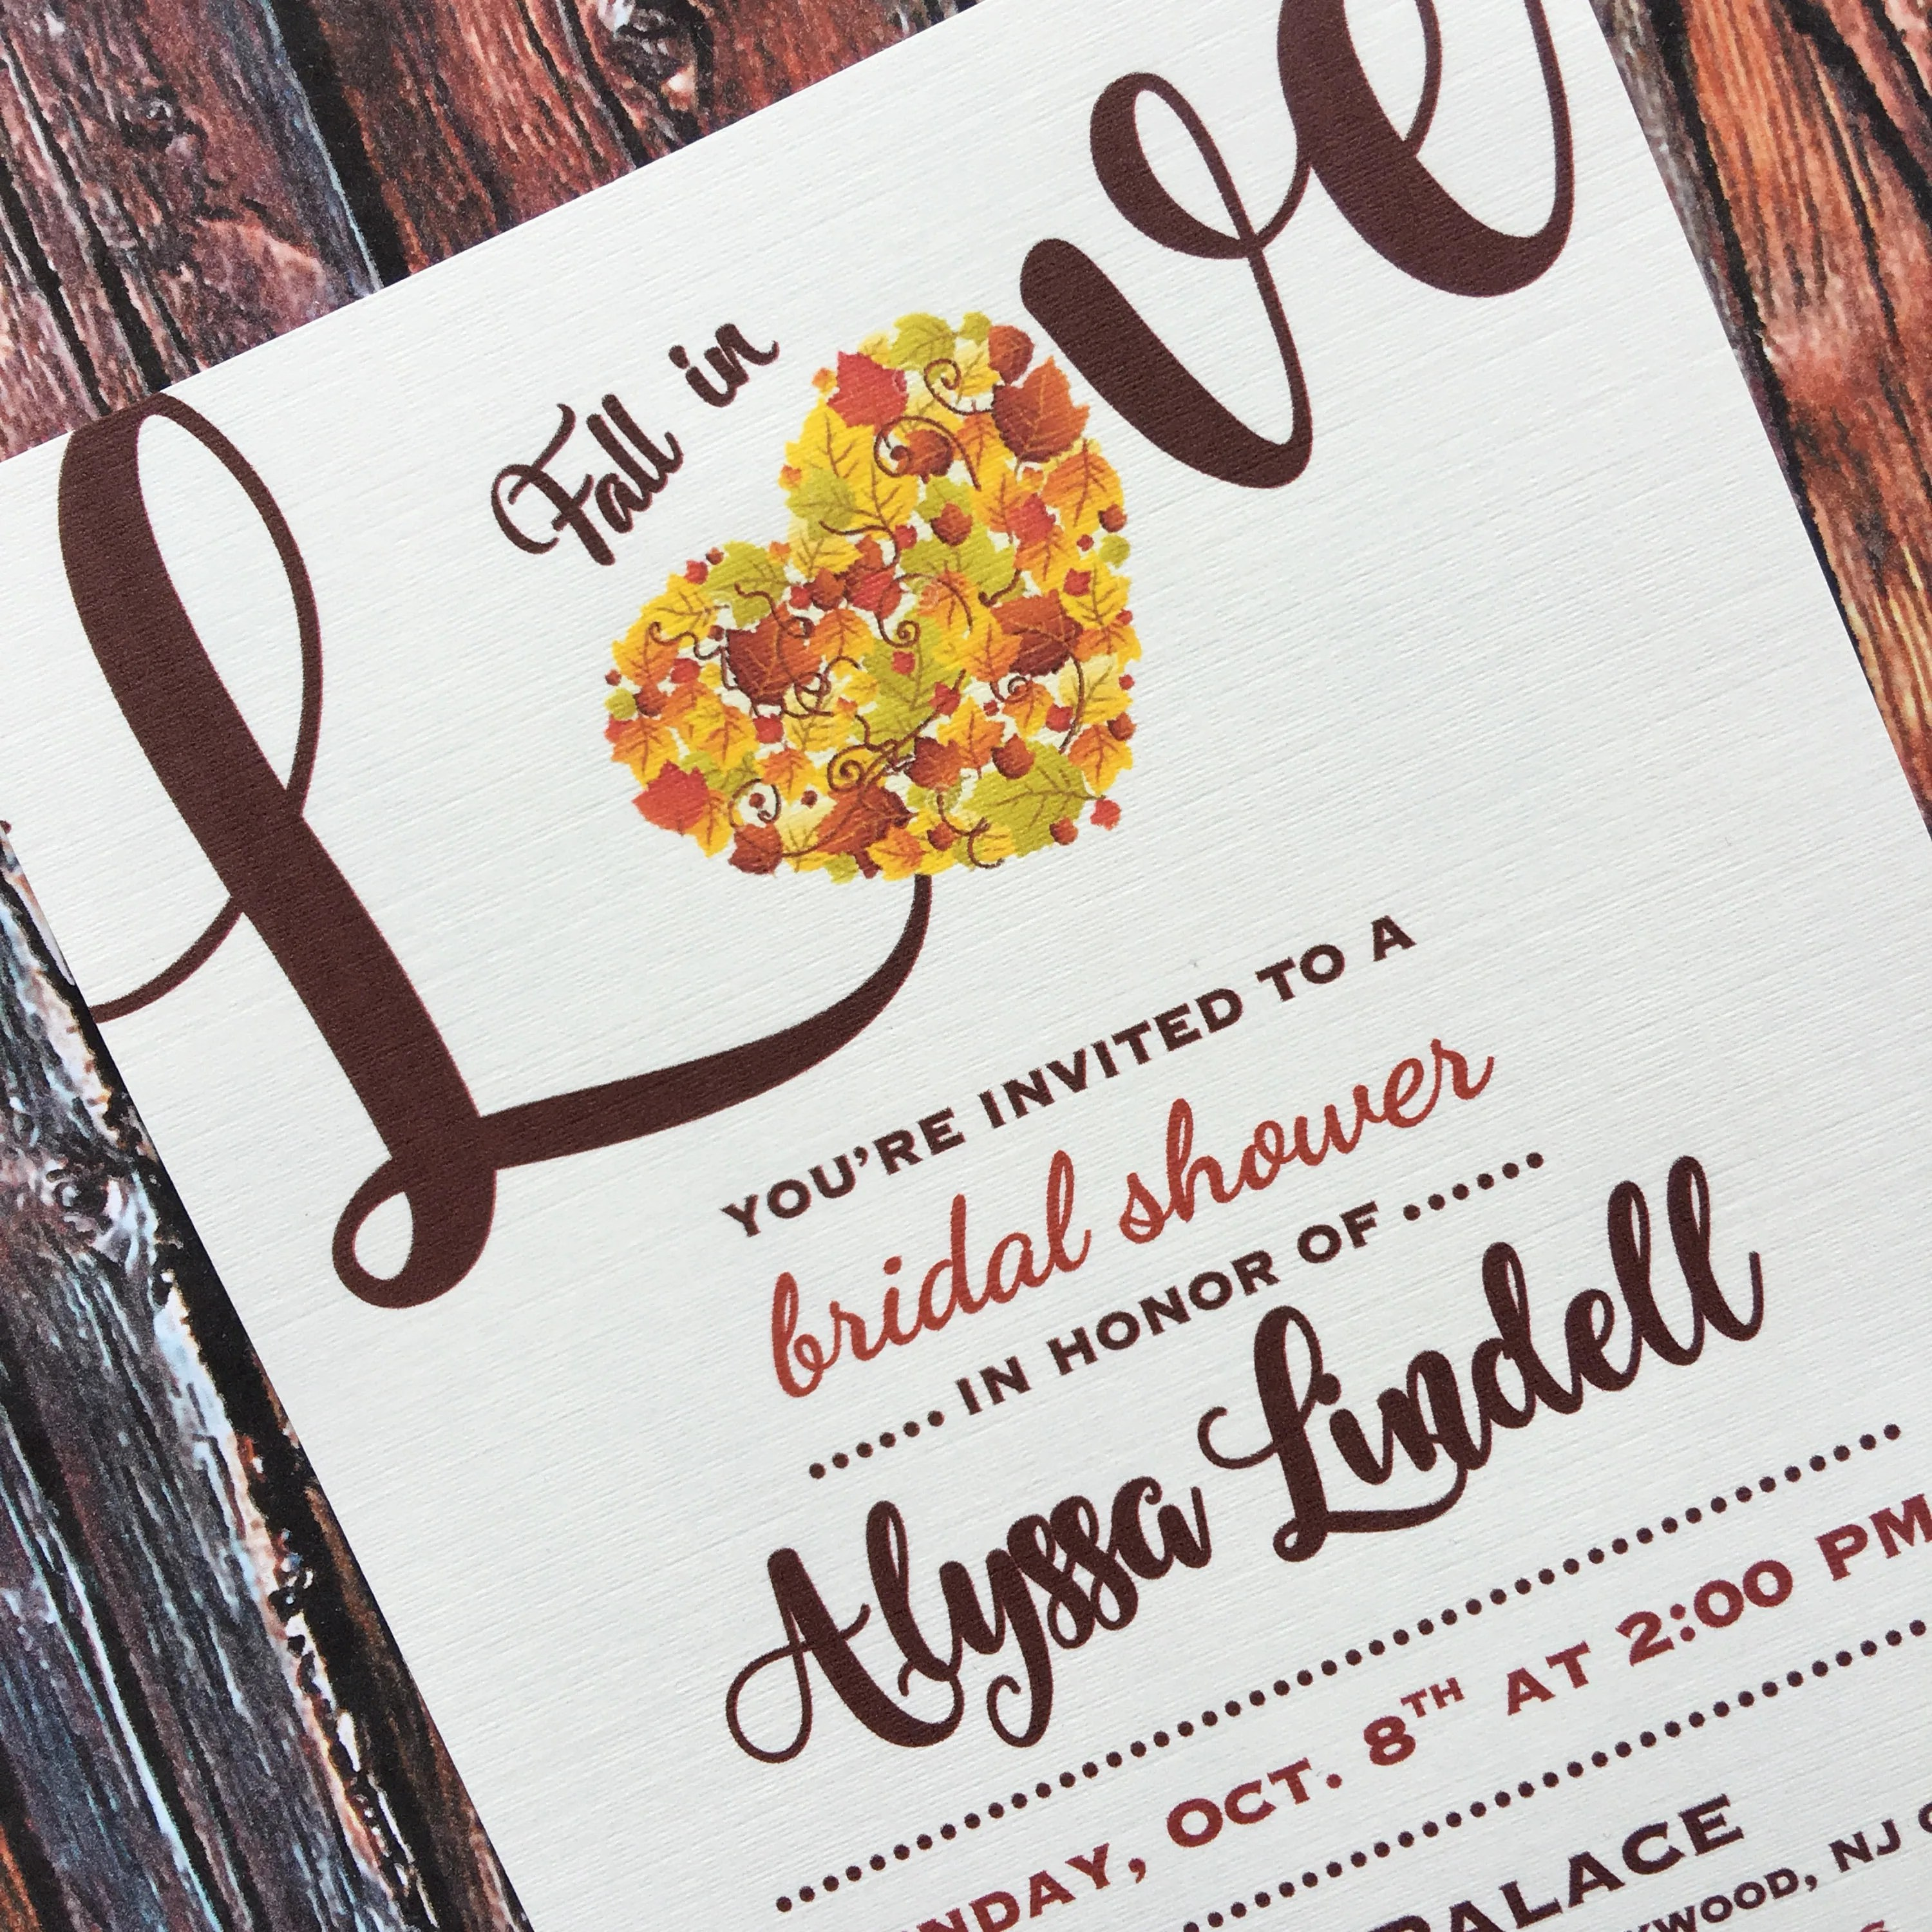 Learn exactly how to address bridal shower invitations and word them! Fall In Love Bridal Shower Invitations Fall Autum Leaves Theme Shower